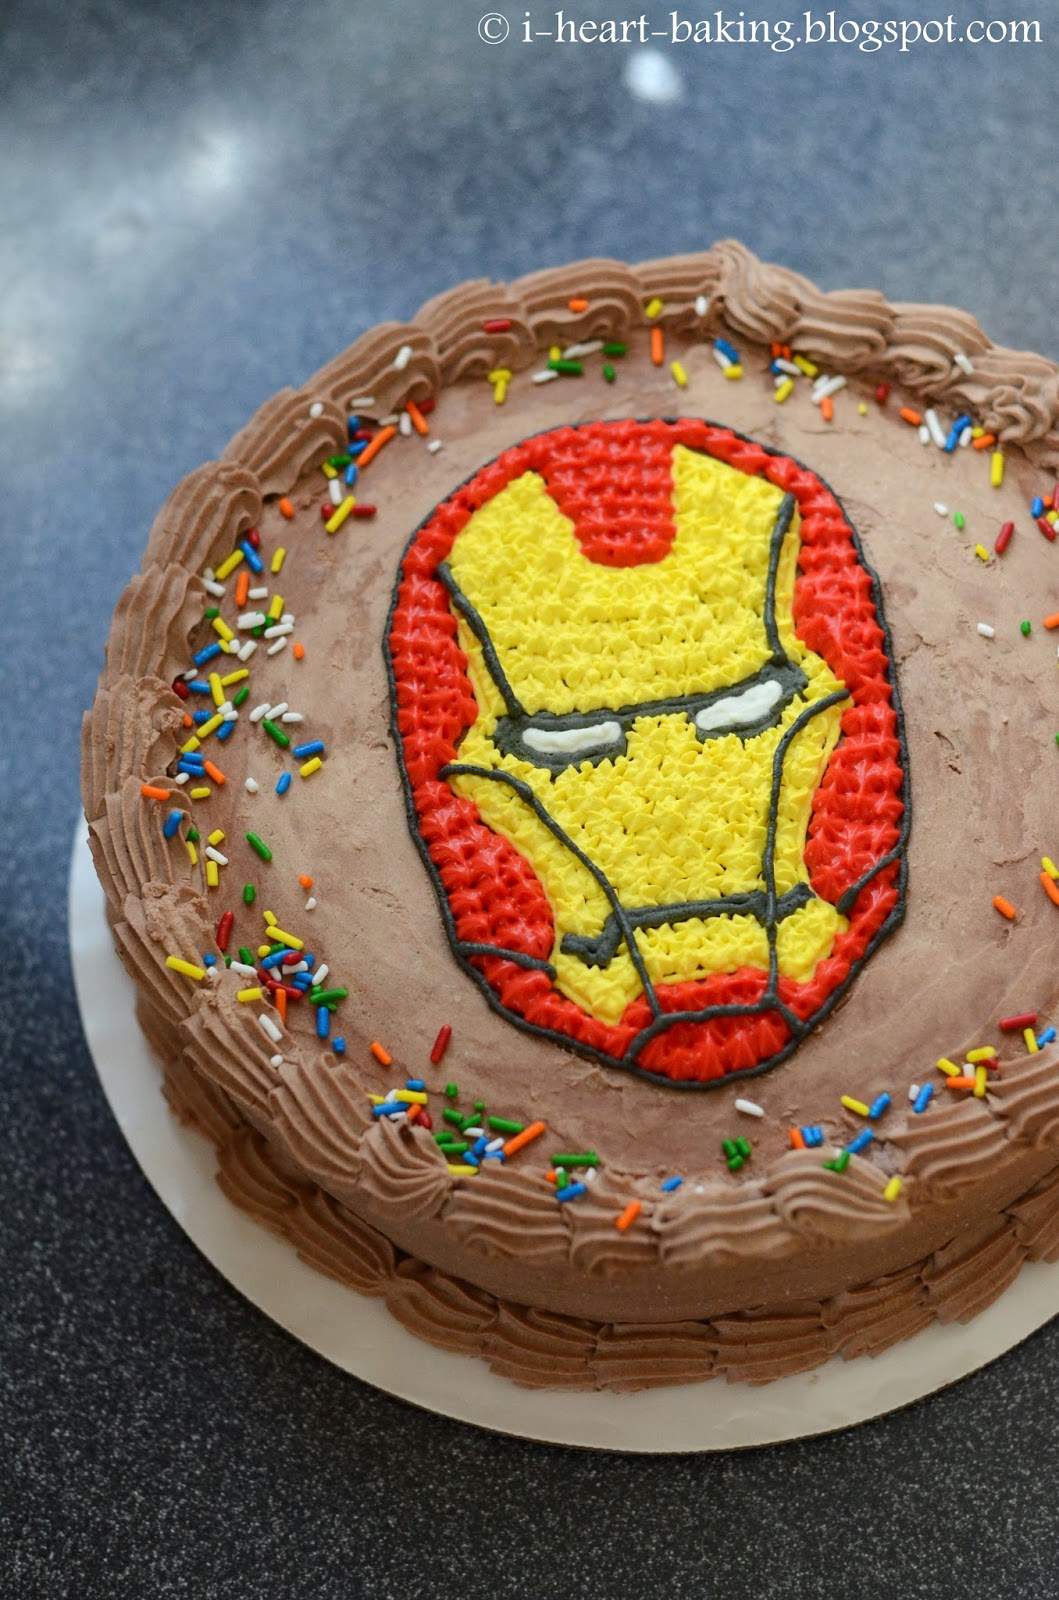 i heart baking!: iron man birthday ice cream cake